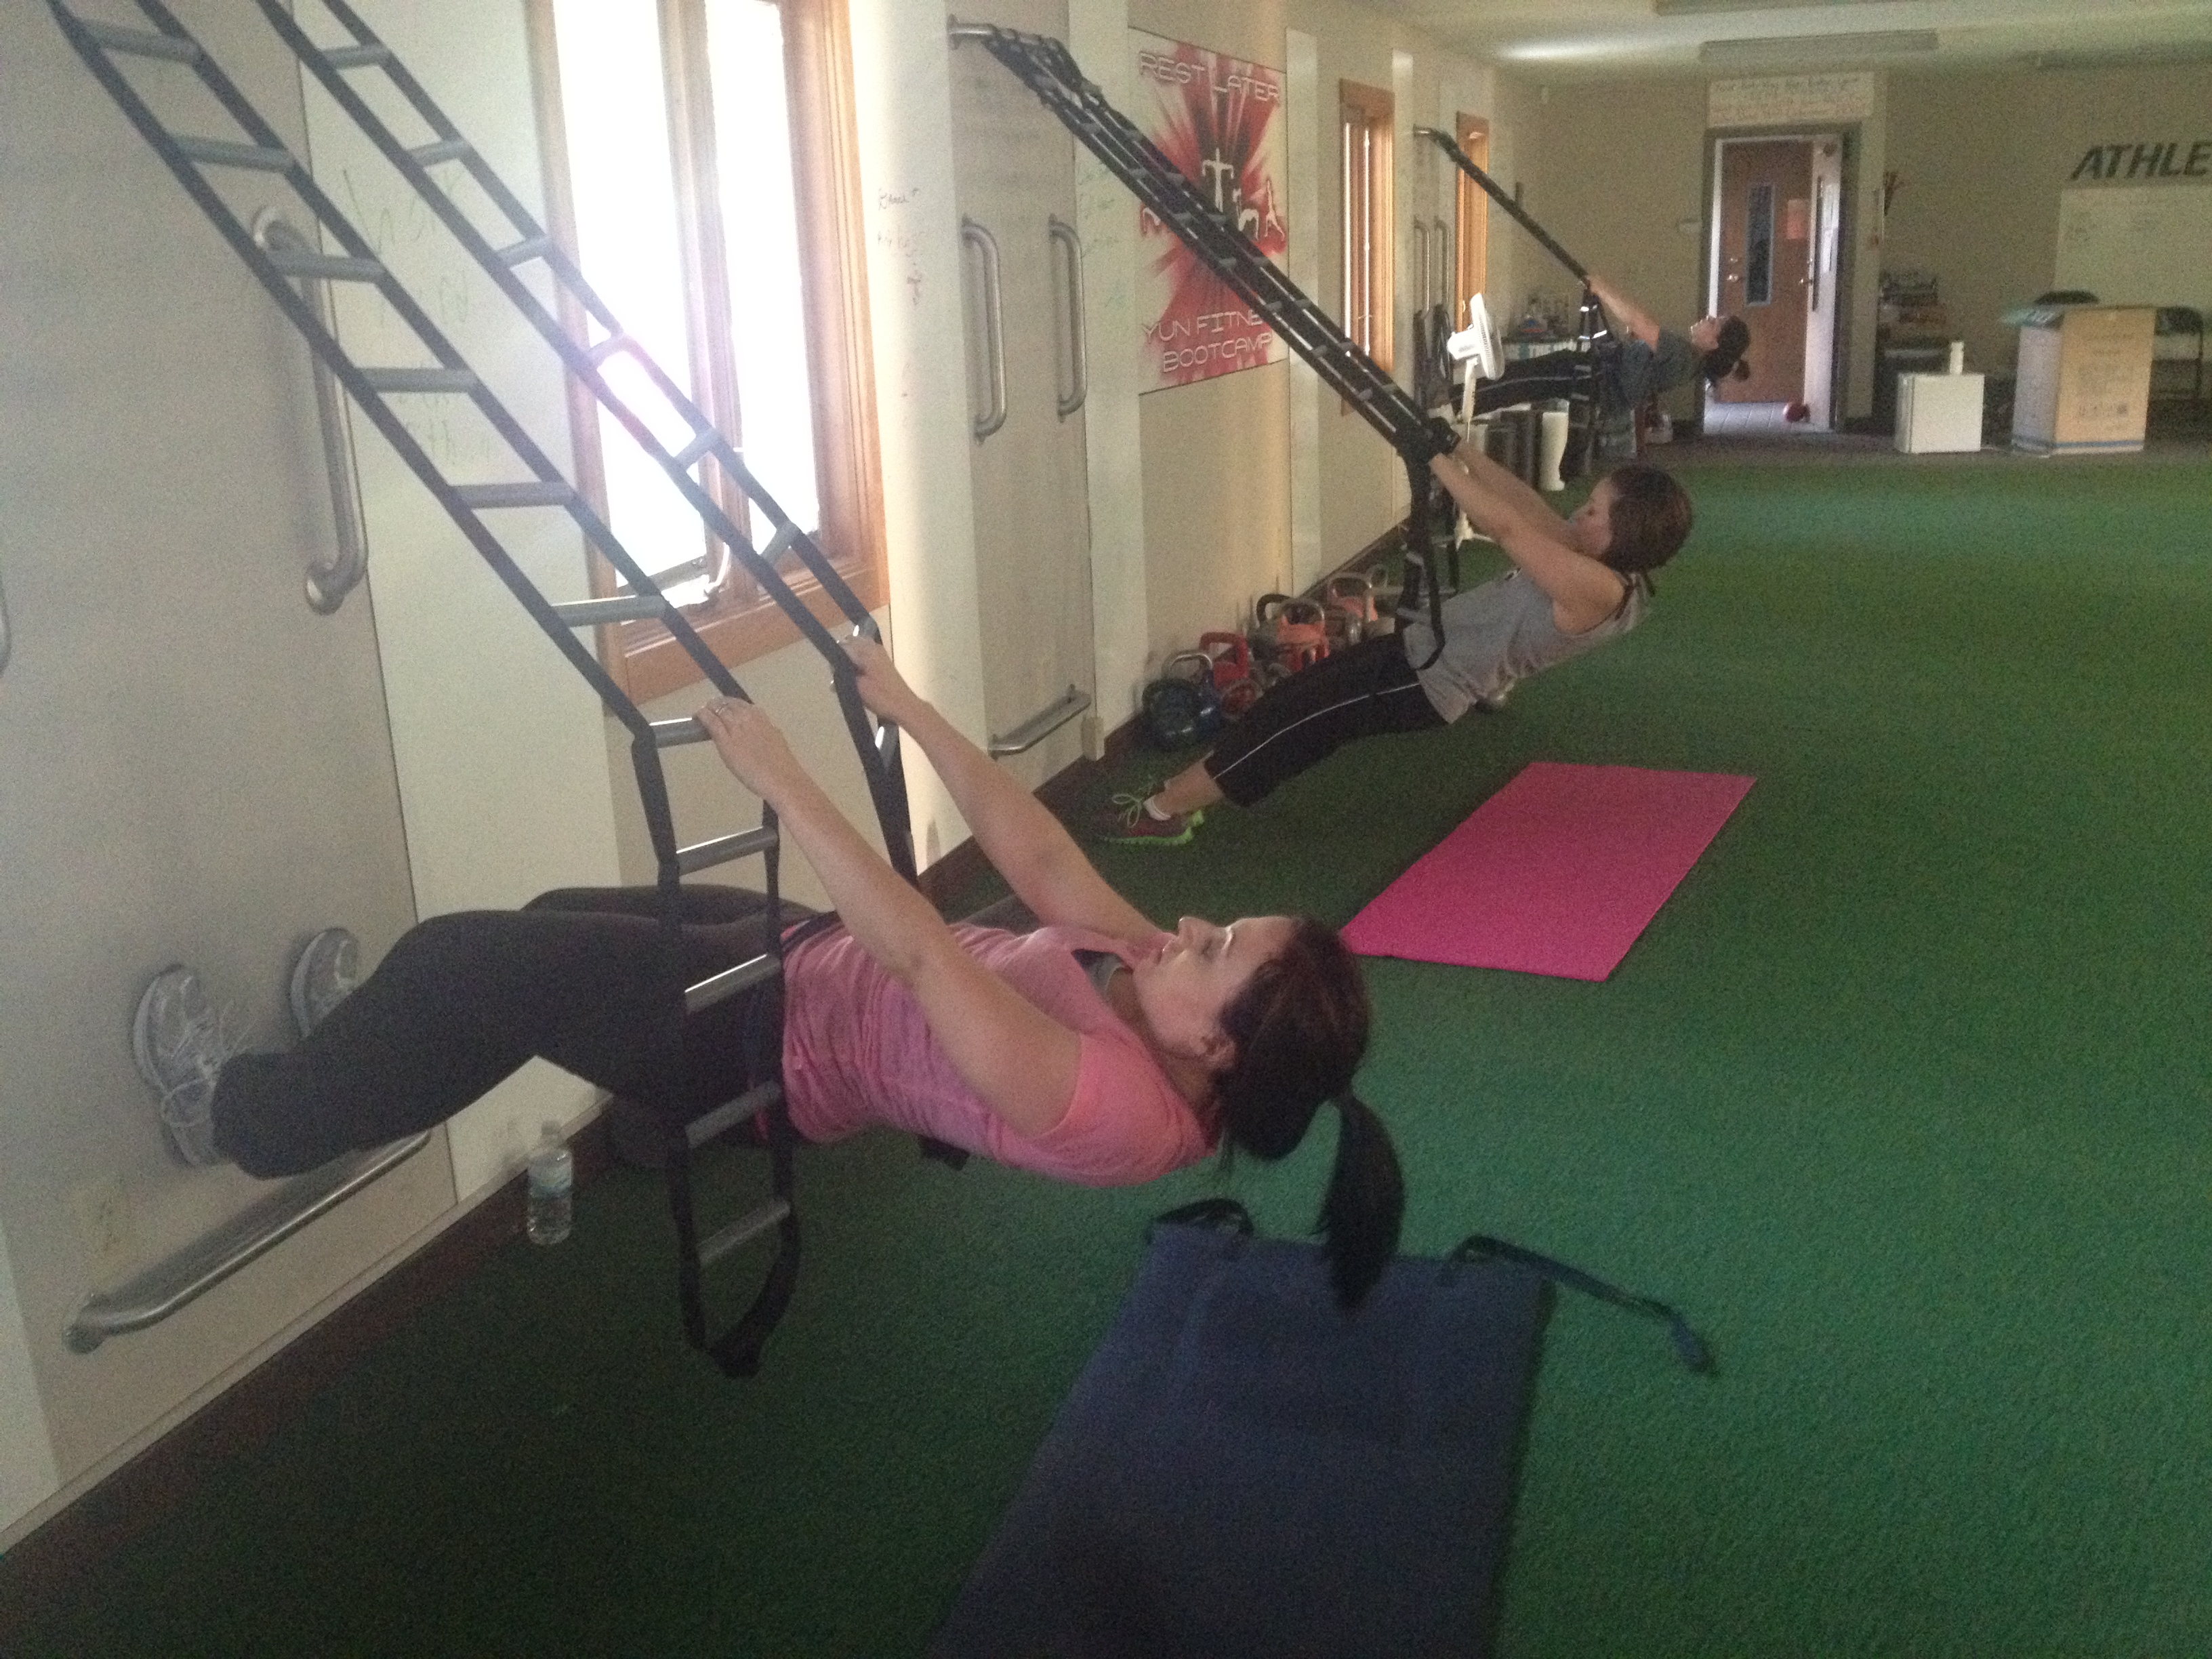 trx workouts provide quite the challenge for people looking to lose weight